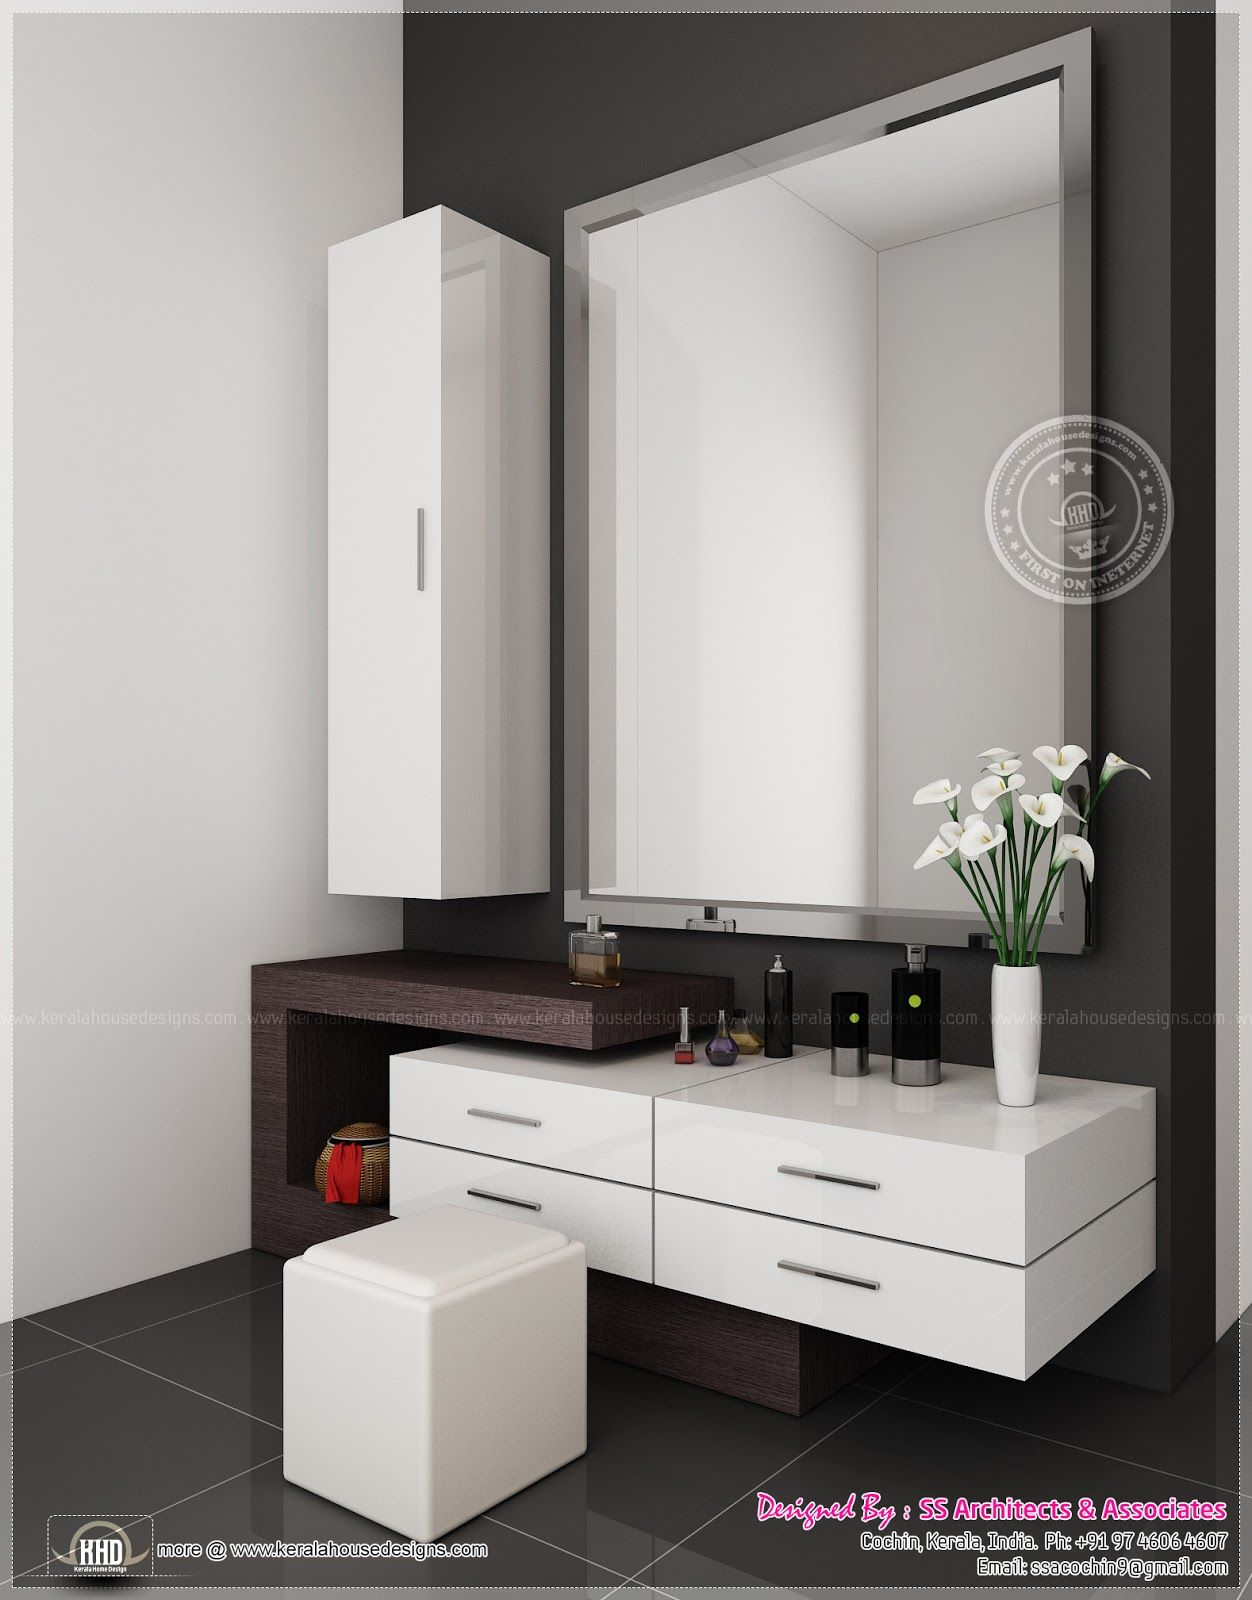 Dressing Table At The Galleria Dressing Table Design Bedroom Dressing Table Contemporary Dressing Tables